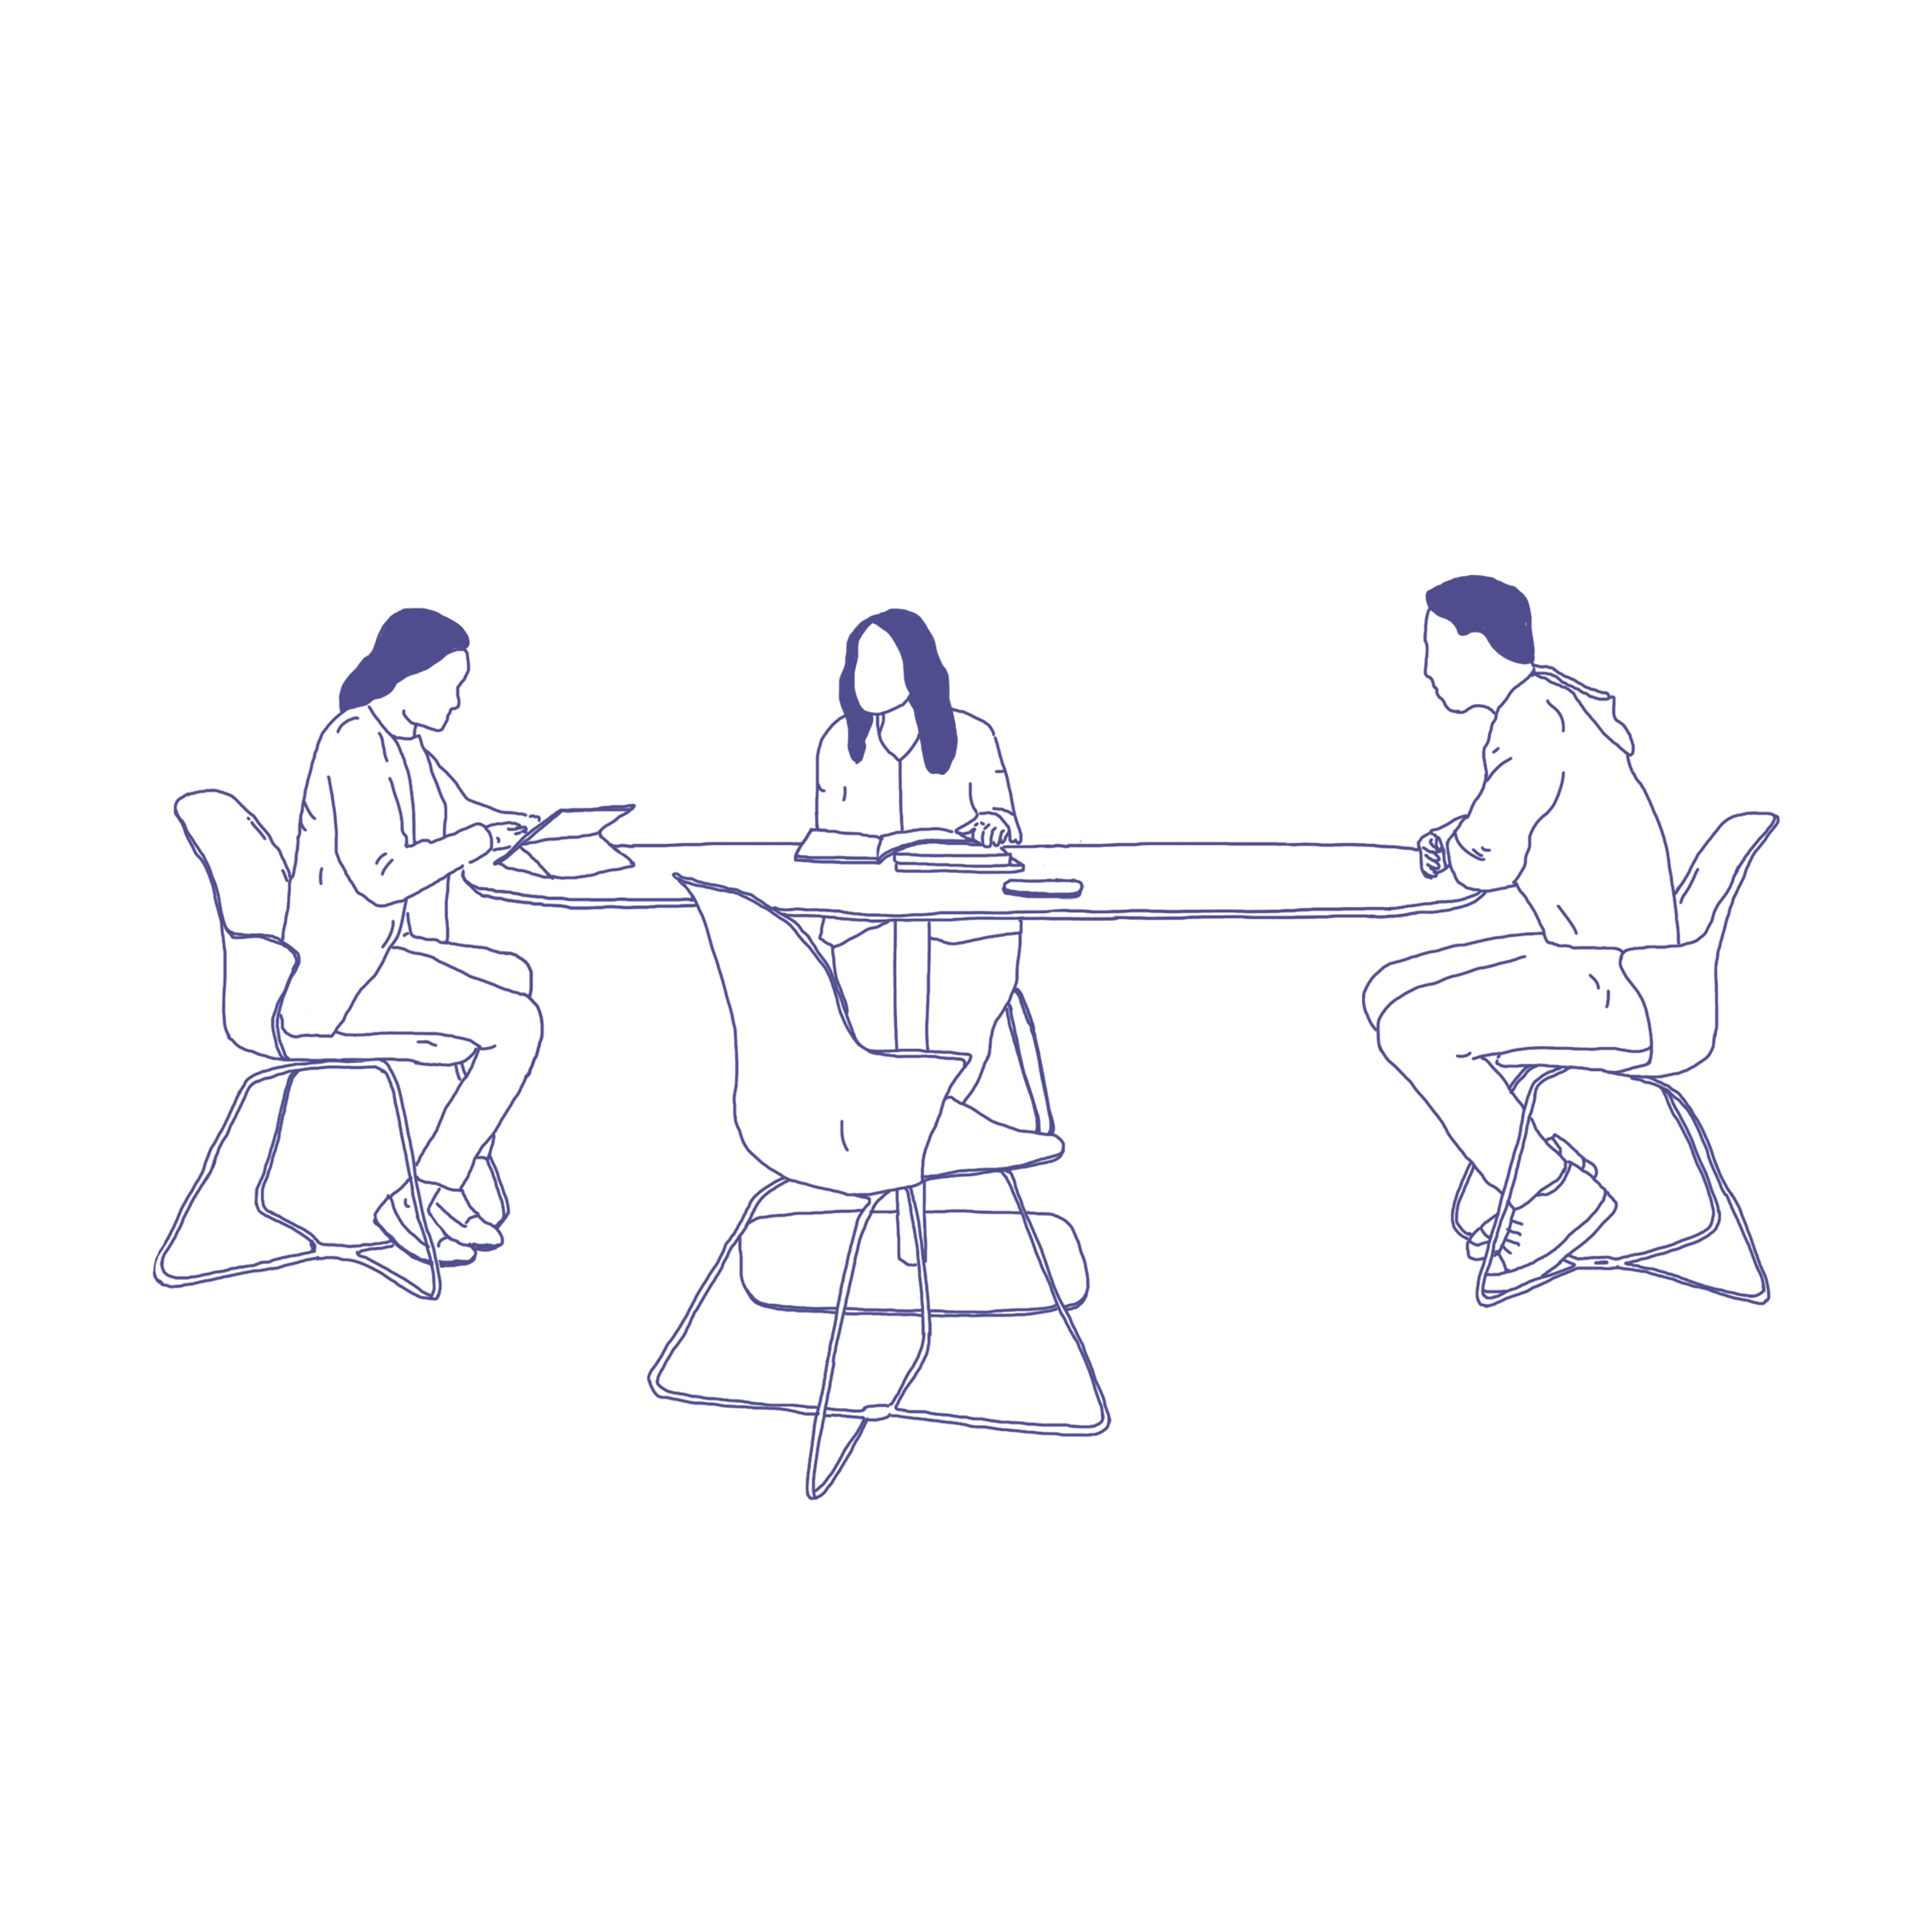 techspace_meeting_room_illustration